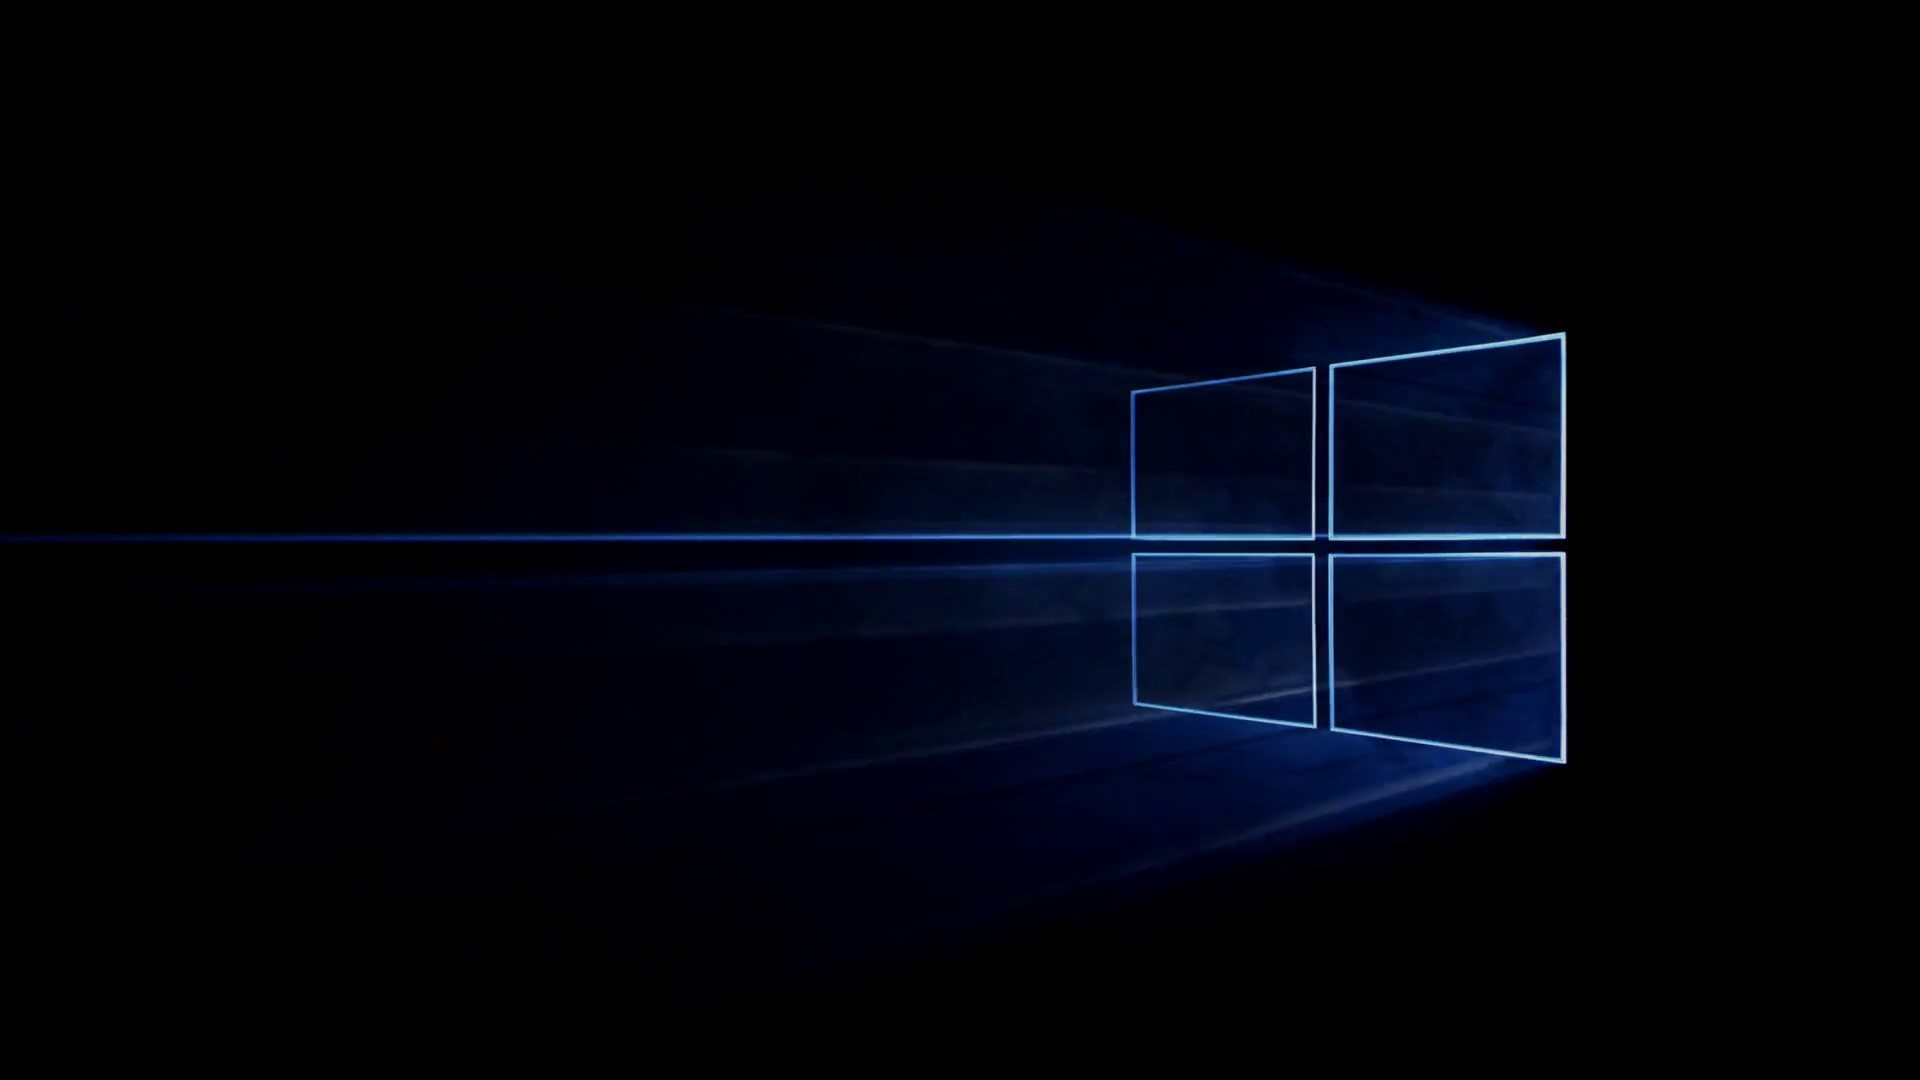 1920x1080 Windows 10 Desktop Is Black 10 Hd Wallpaper